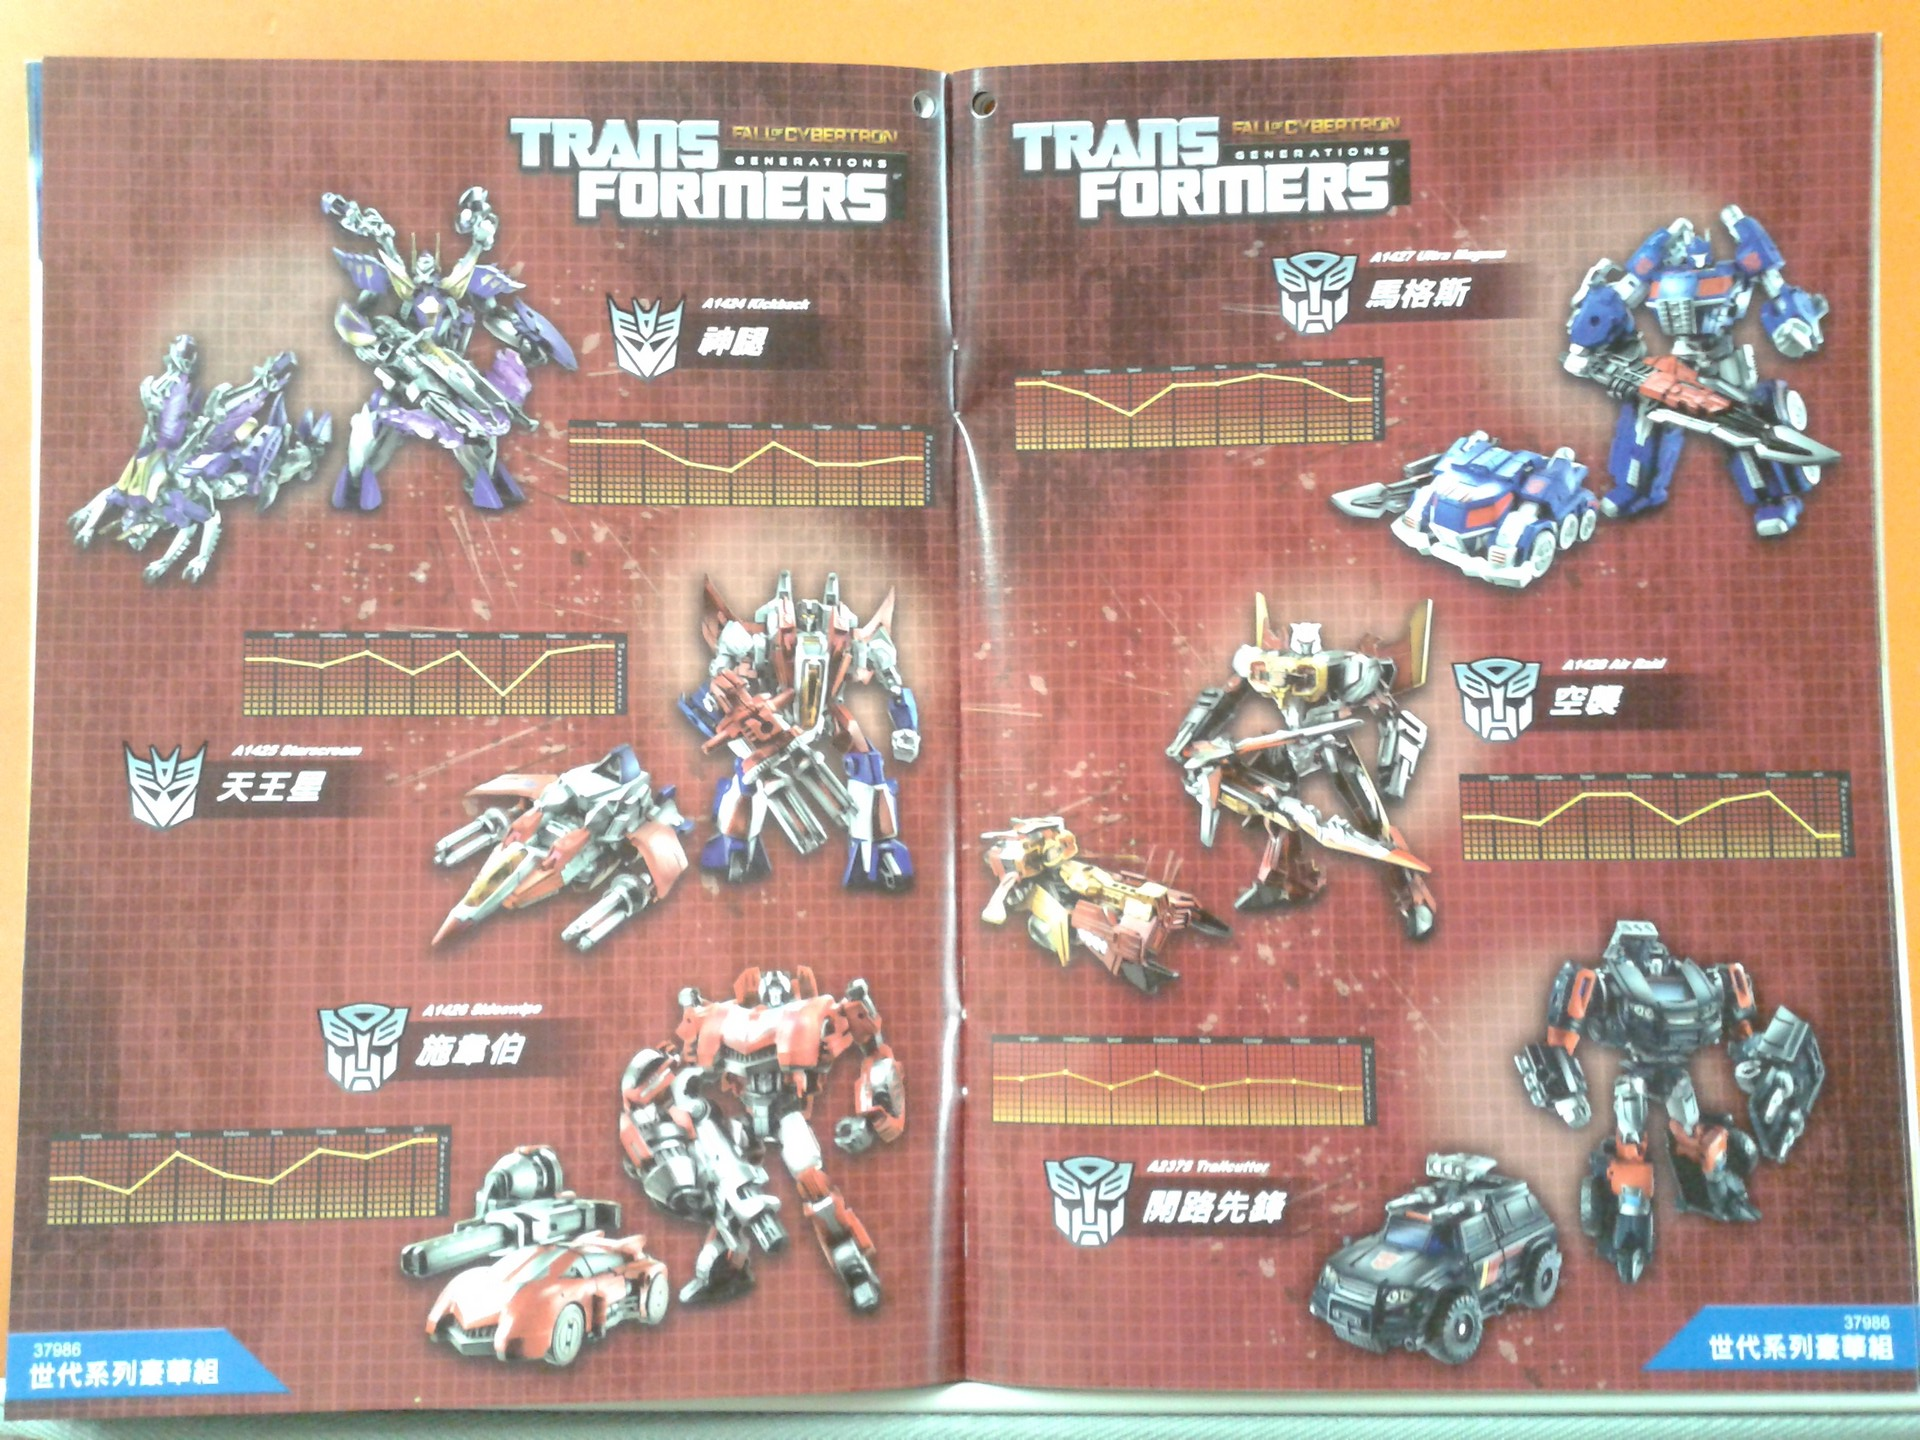 New Taiwan TF Catalog-20130320_164046.jpg